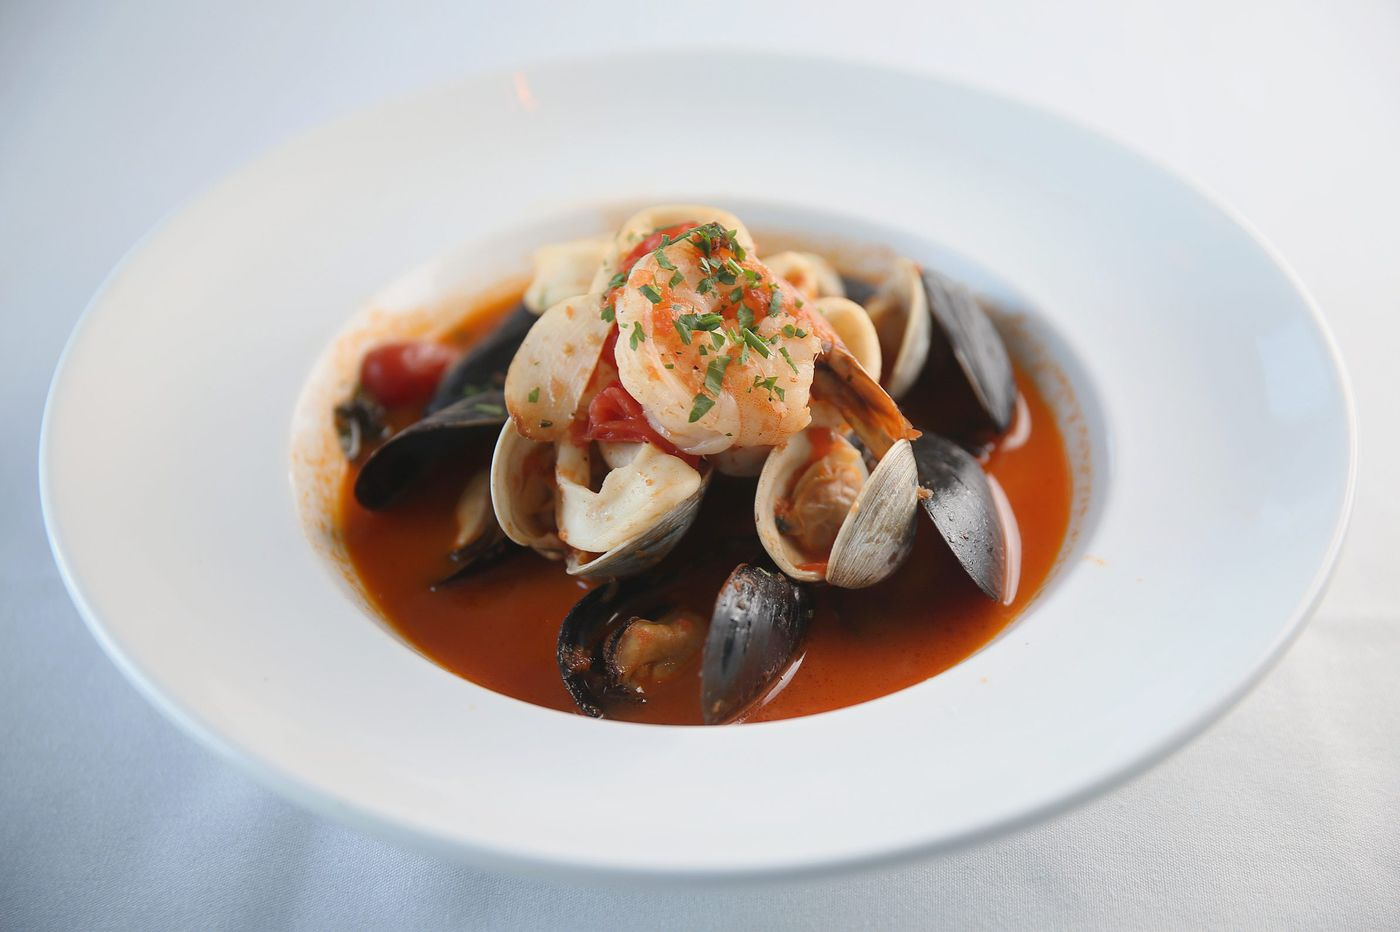 Jersey Shore restaurants offer tasty food options from Cape May to LBI